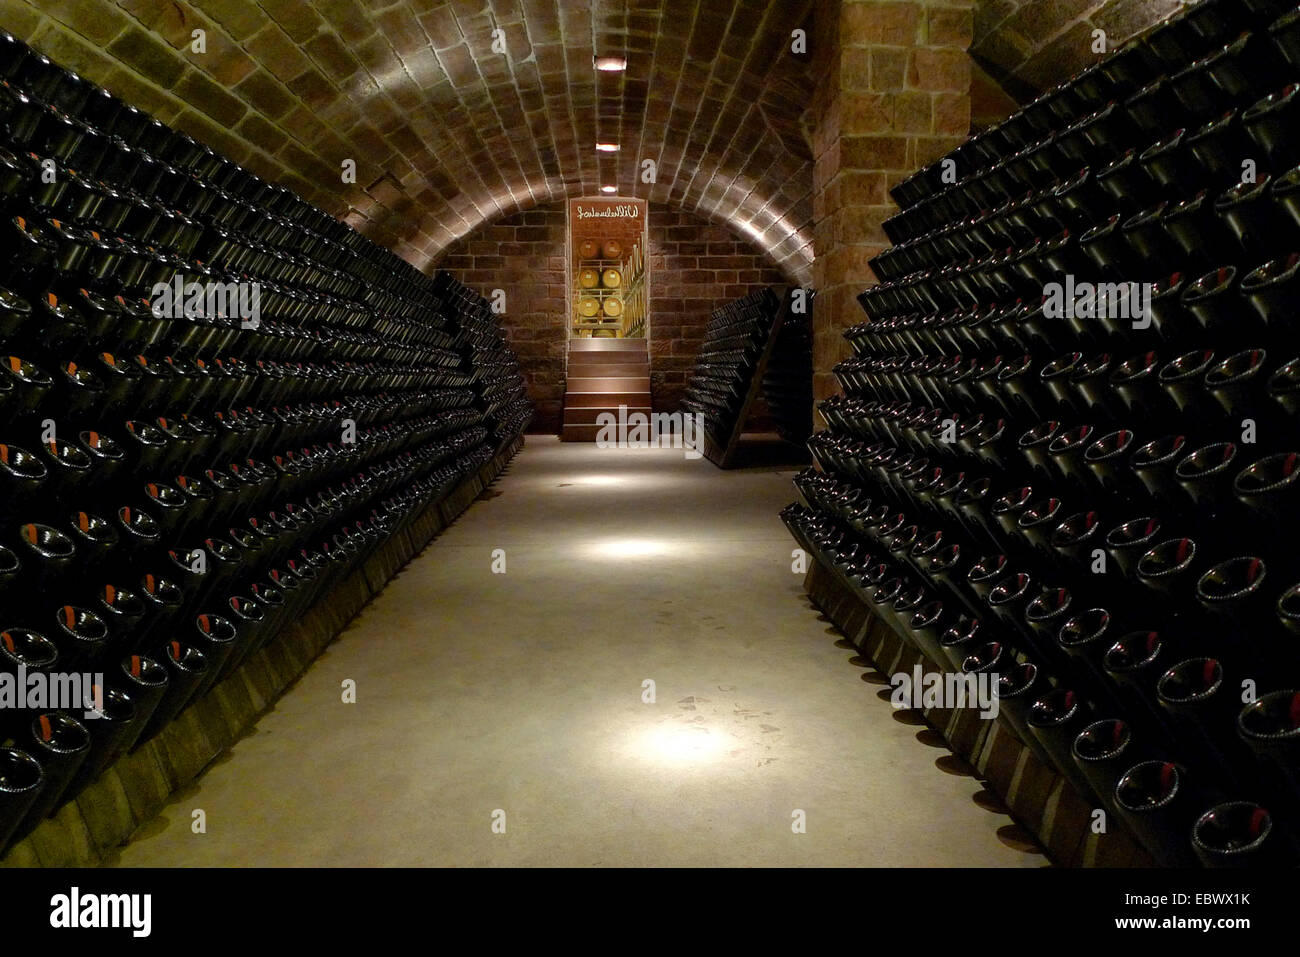 Exceptionnel Storage Room Champagne Bottles In Winery, Germany, Rhineland Palatinate    Stock Image